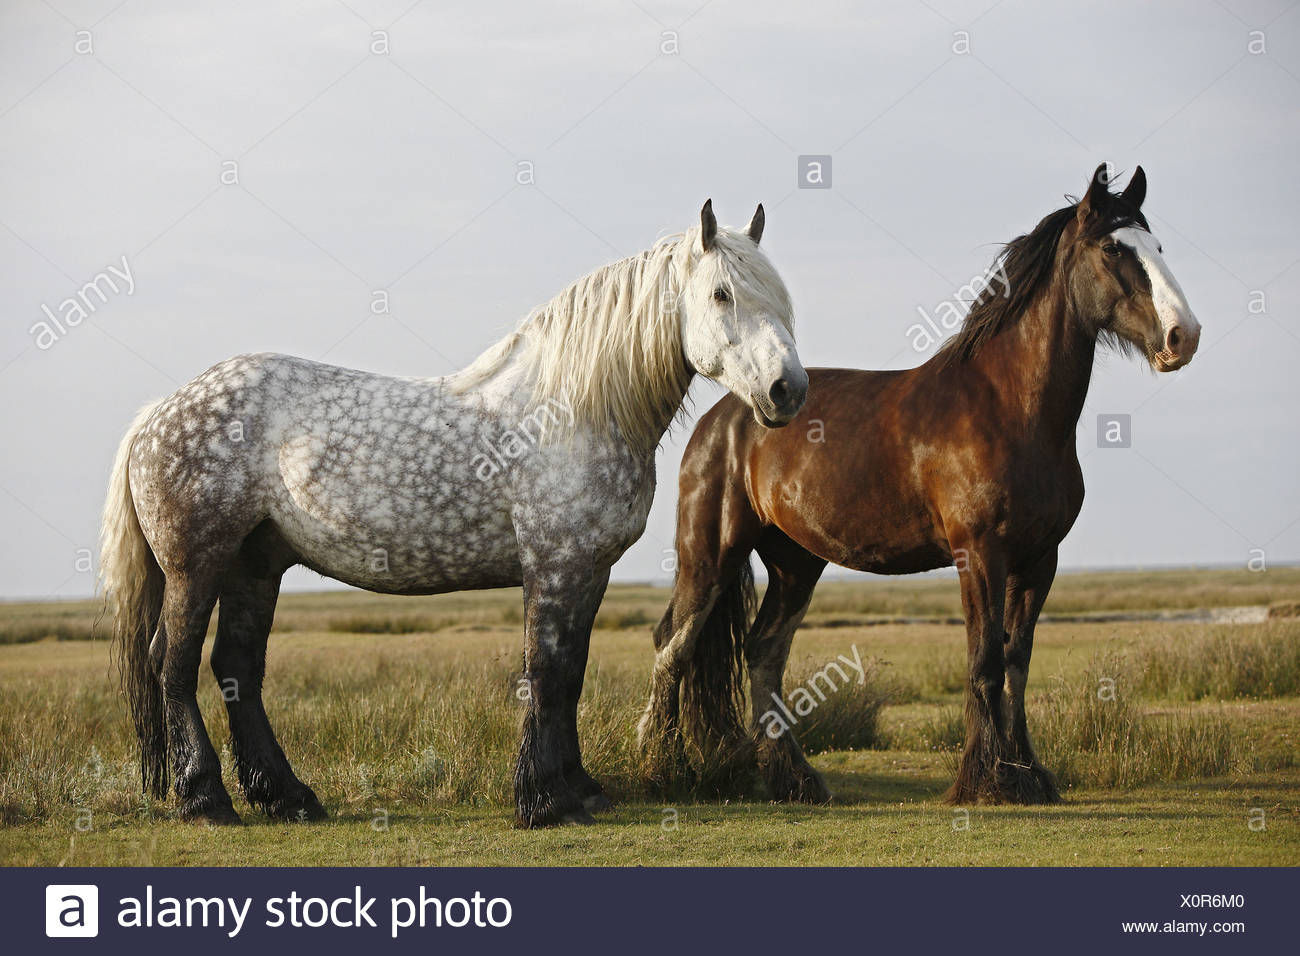 Shire Horse And Percheron Horse On Meadow Stock Photo Alamy